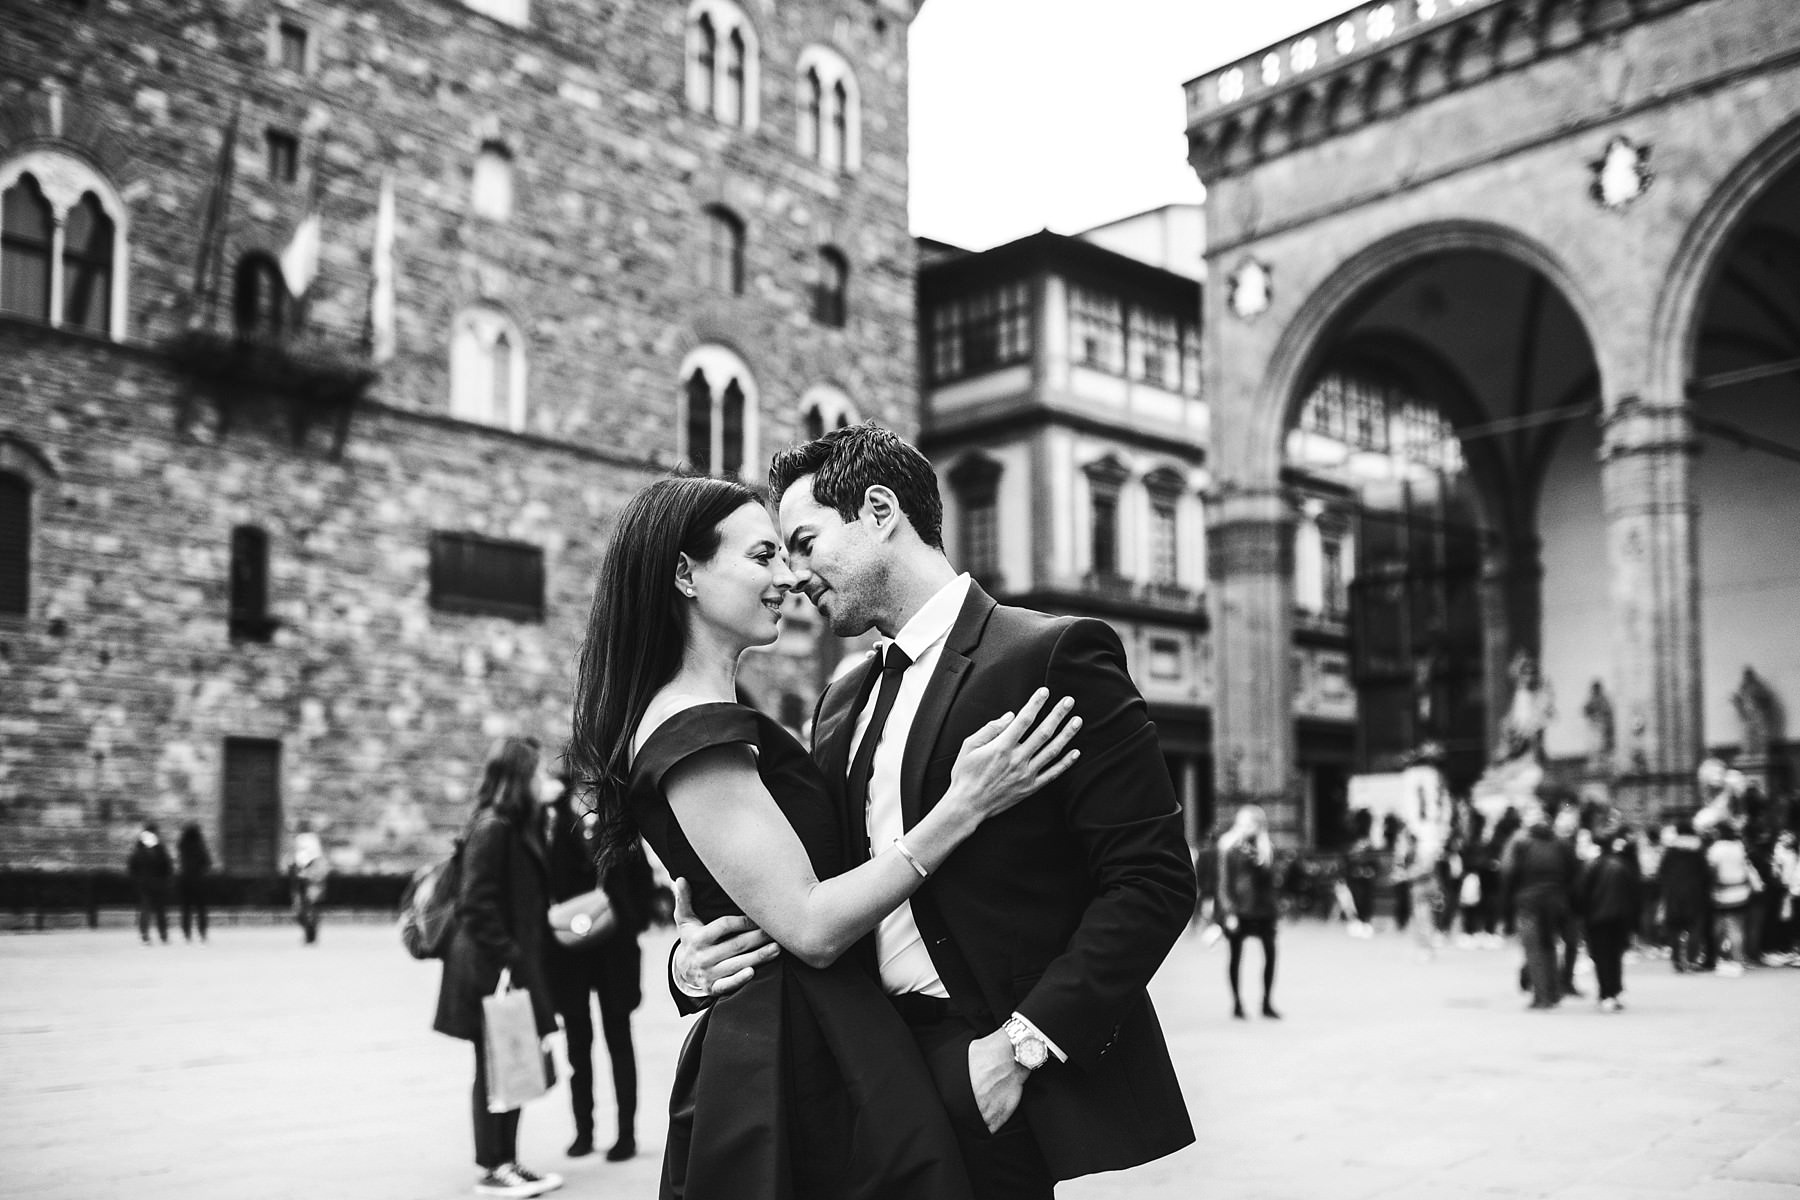 Classic and elegant engagement vacation photo shoot in the heart of Florence at Palazzo Vecchio near Loggia de Lanzi